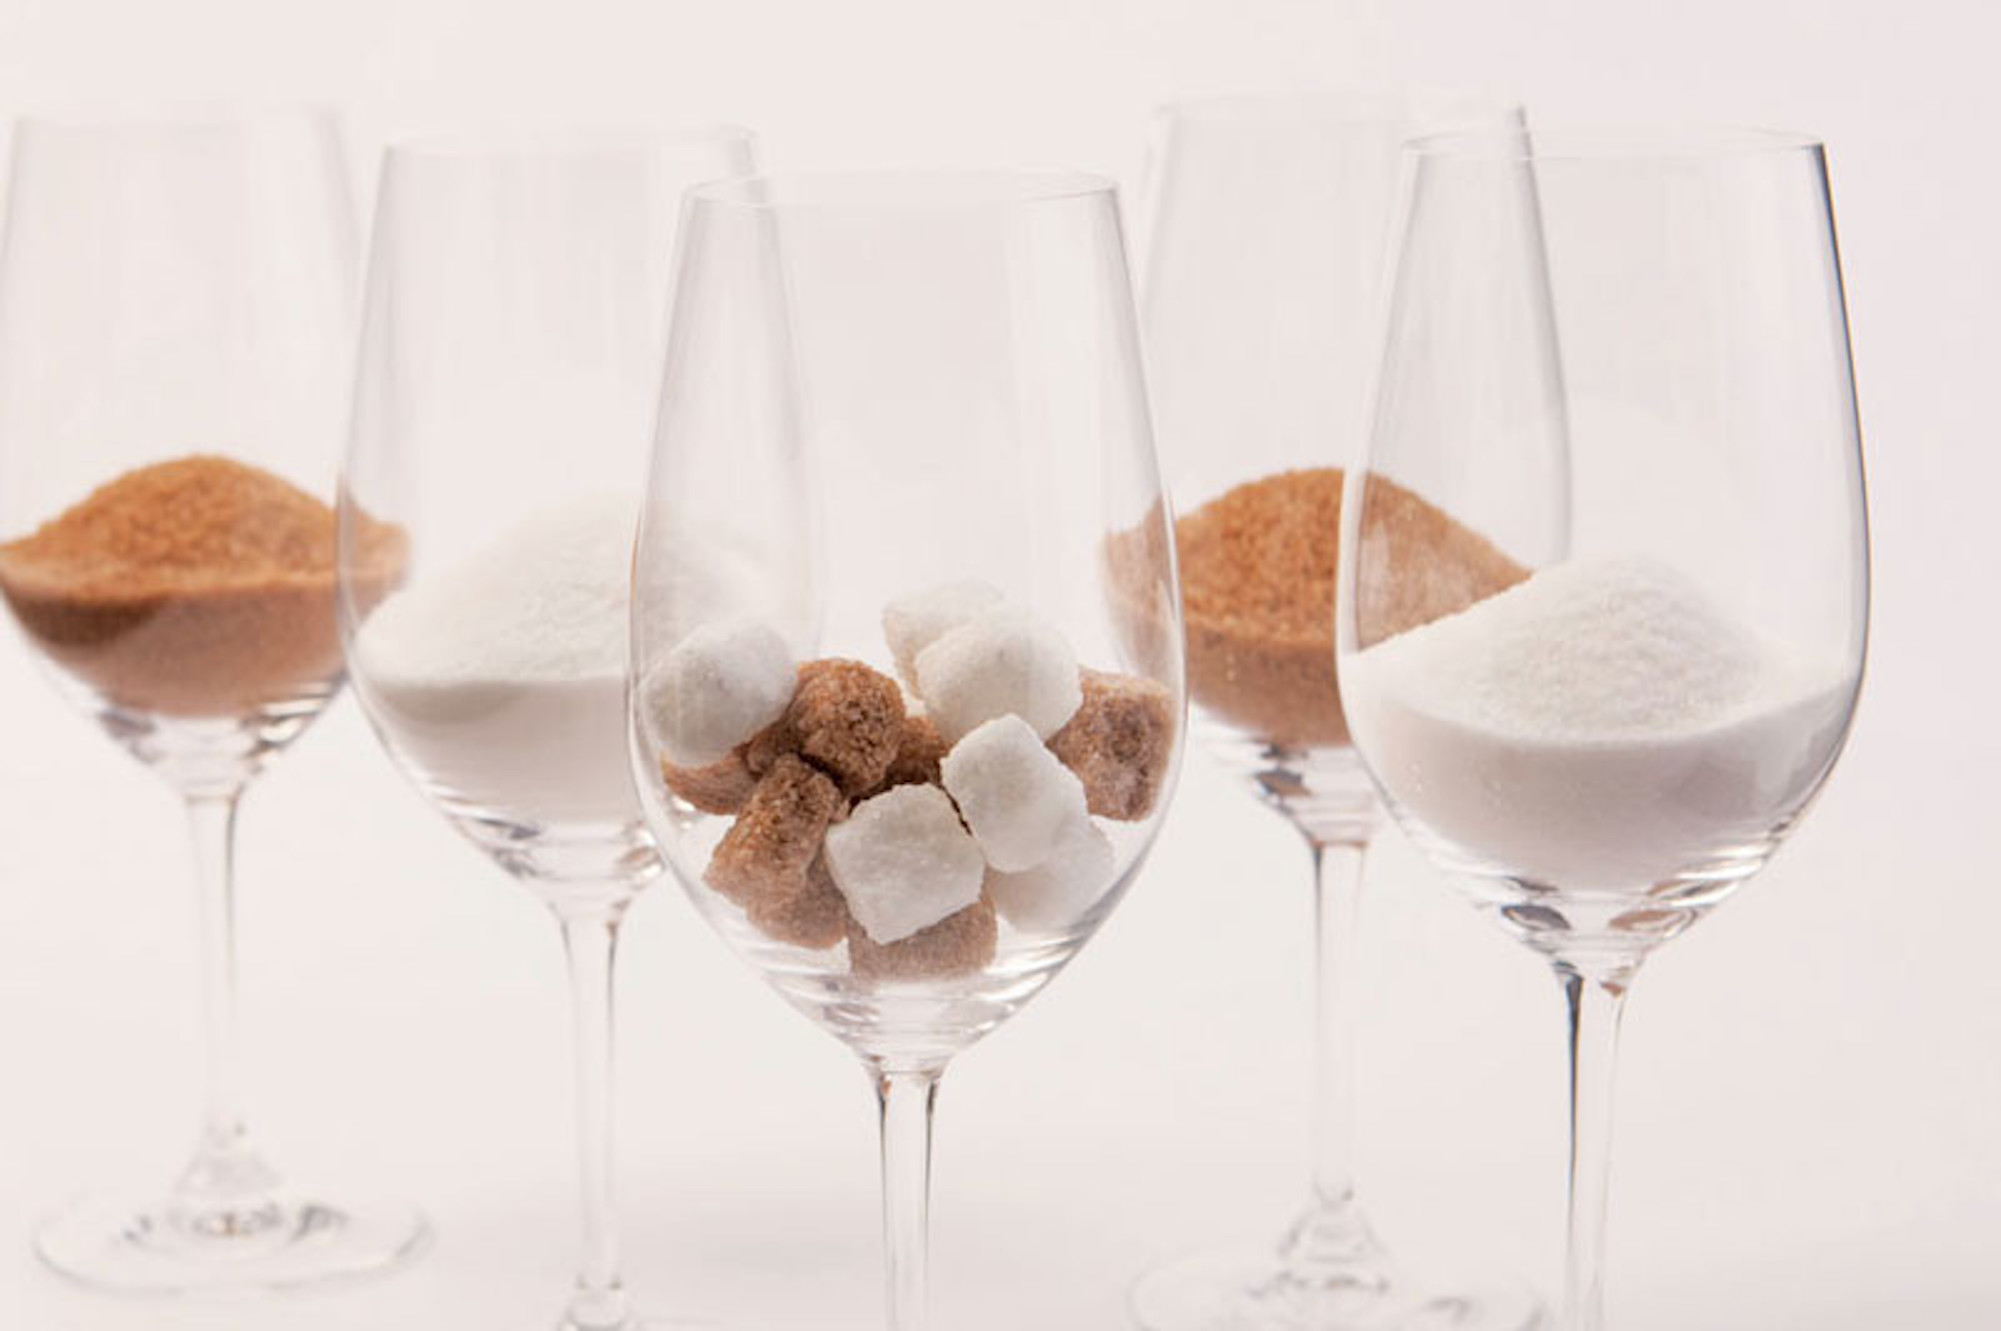 can you drink wine on a diet? calories, sugar, keto, carbs